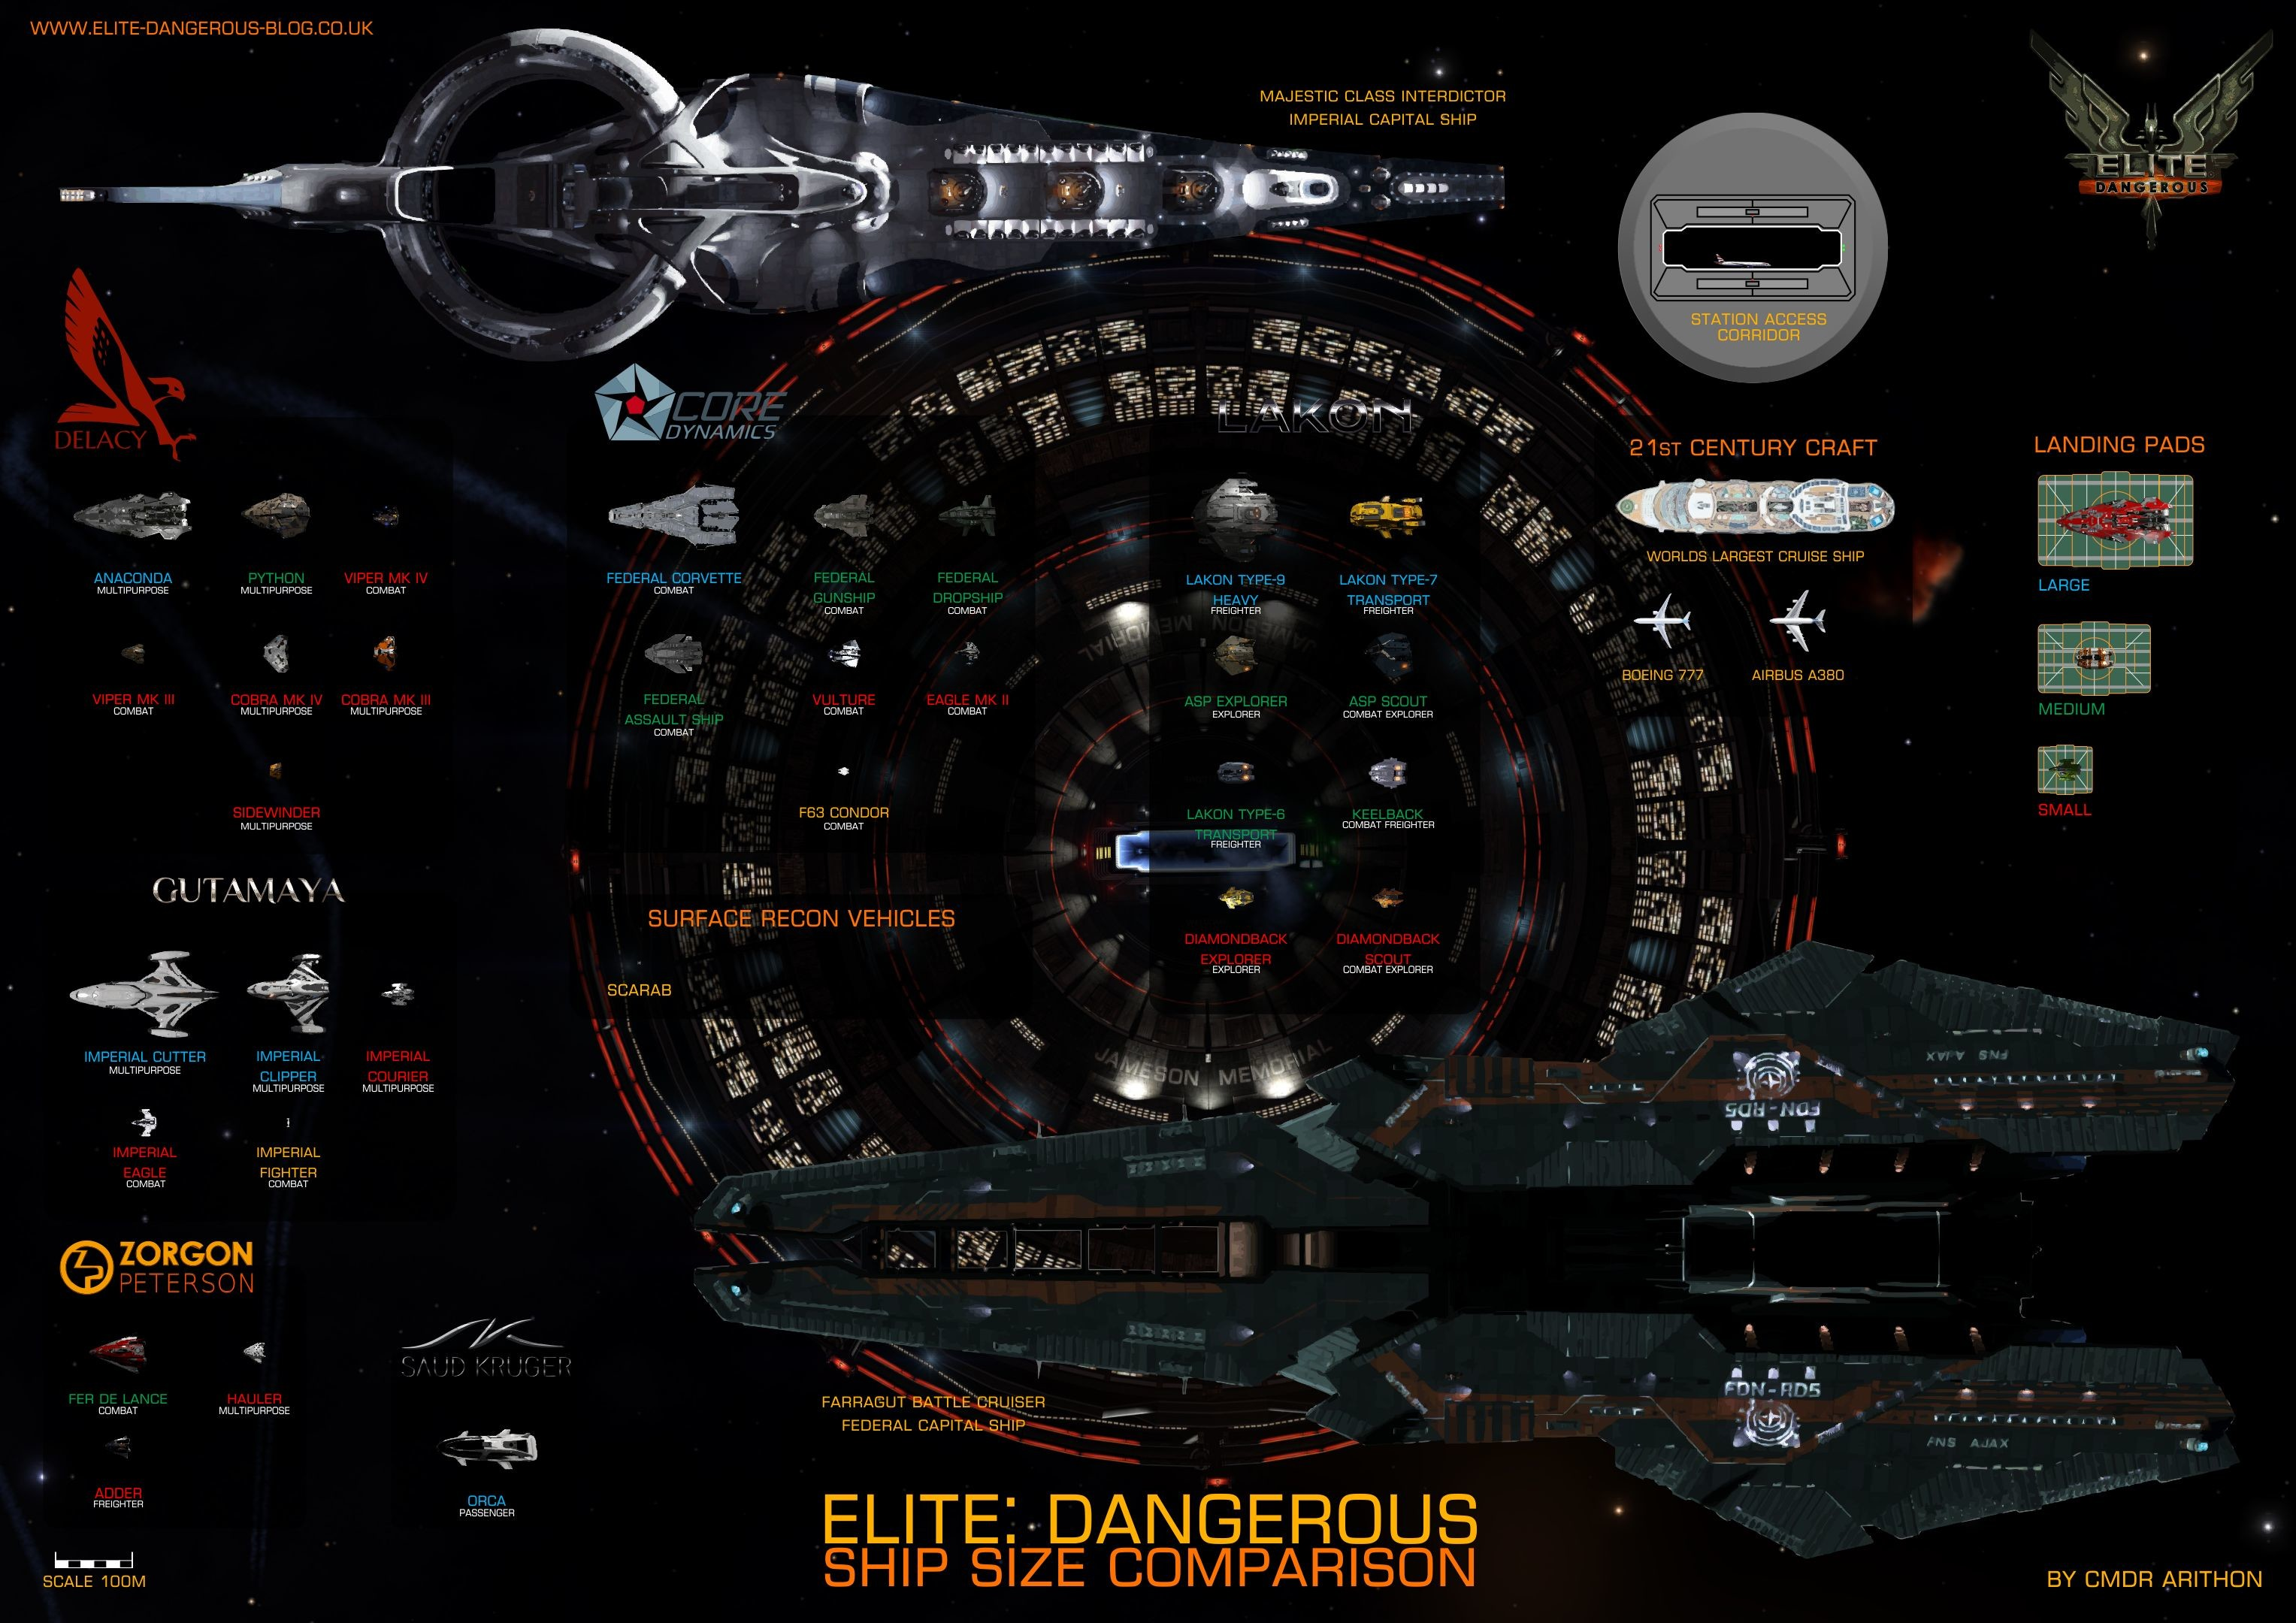 3055x2160 Elite: Dangerous Blog | Elite Dangerous ships sizes to scale in 4K